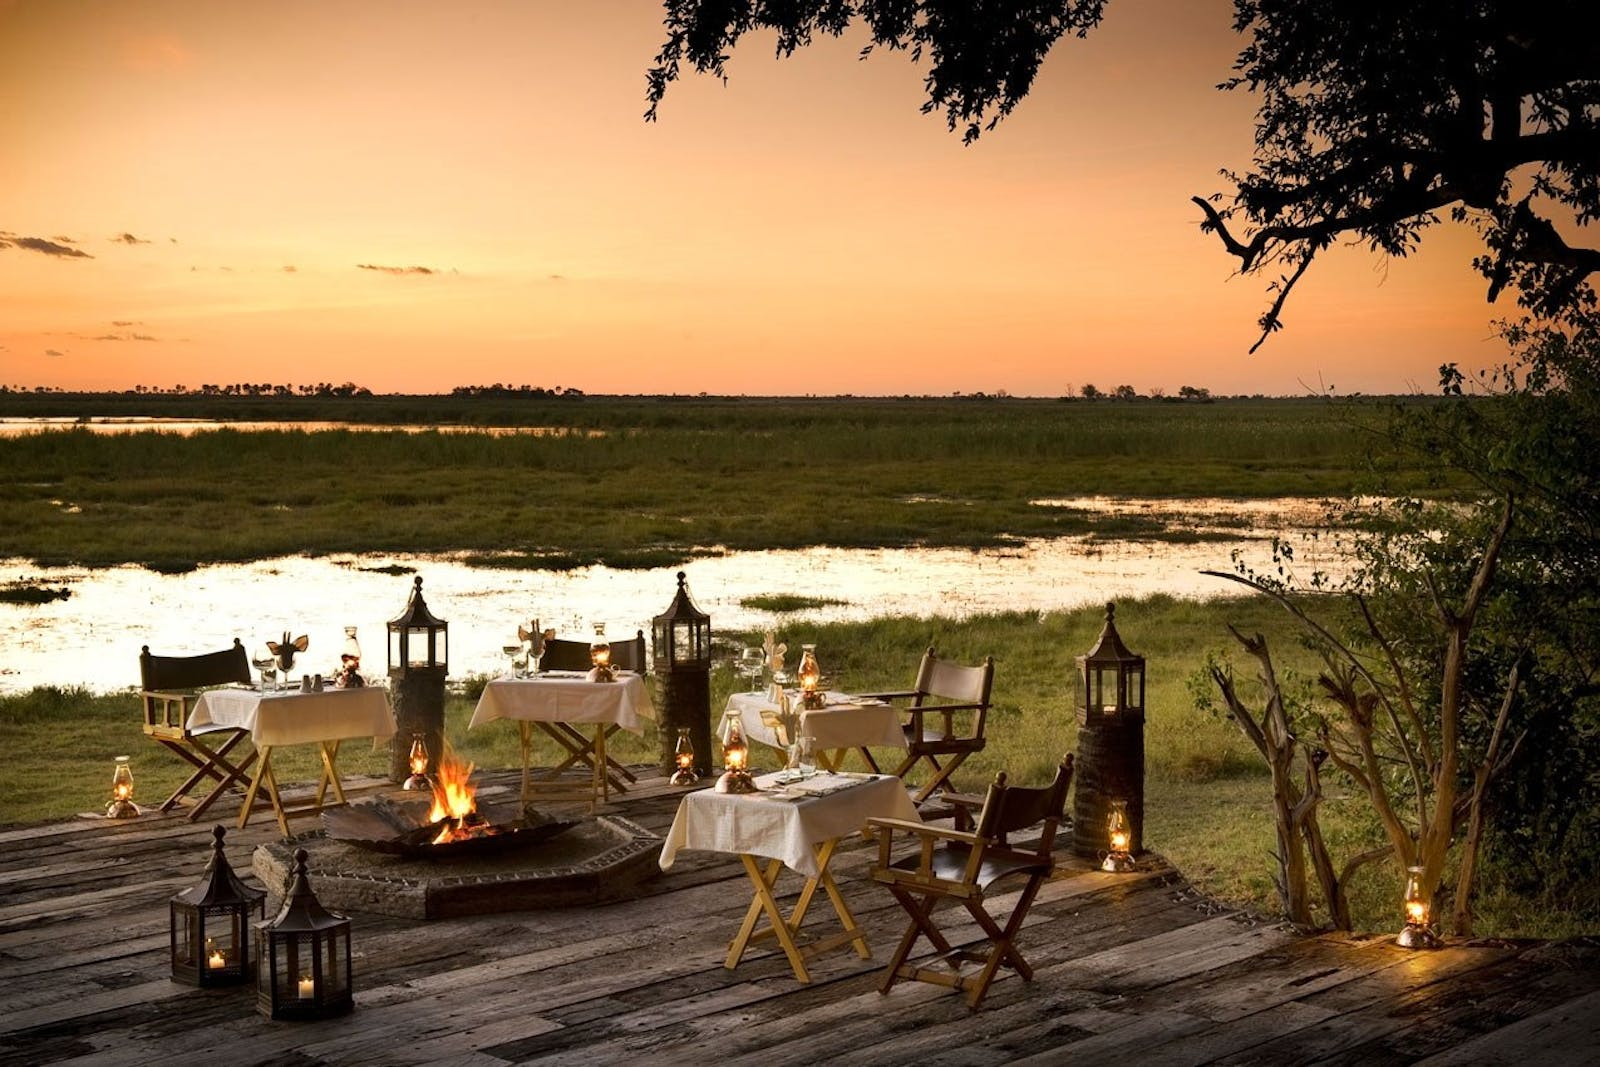 Alfresco Dining at Zarafa Camp